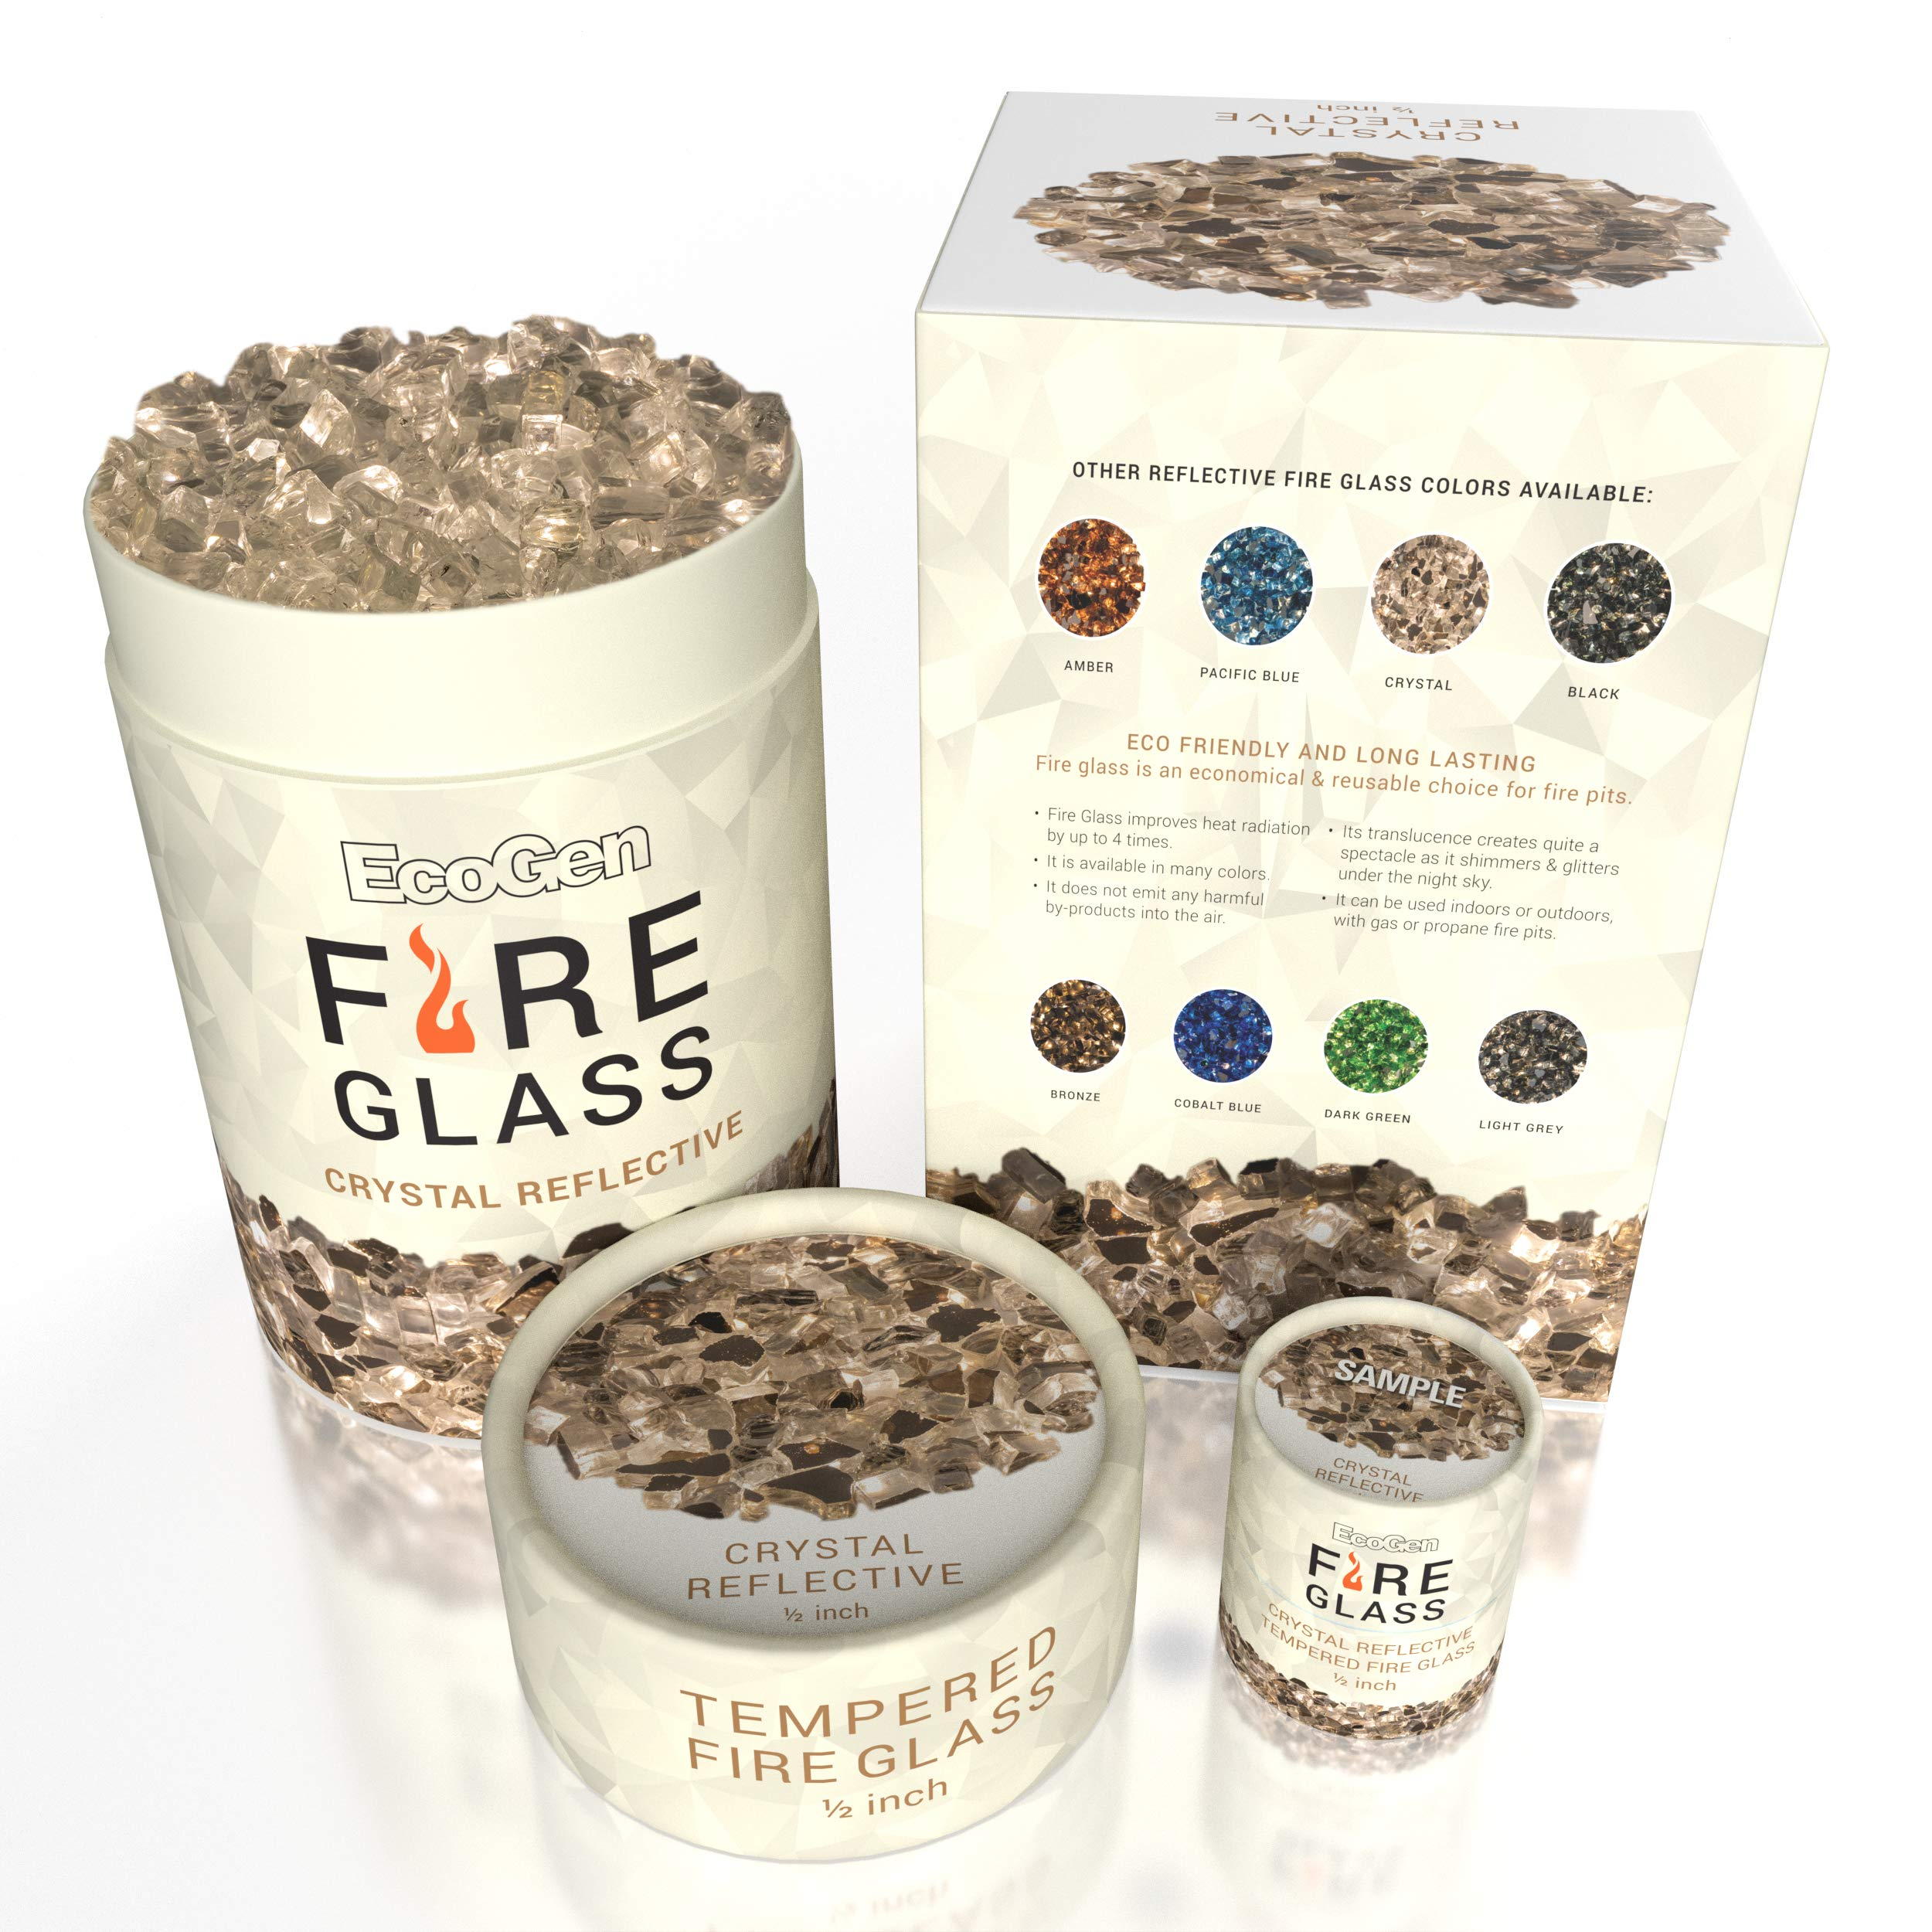 EcoGen Fire Glass Rocks for Outdoor Fire Pits and Indoor Fireplace, Color, Optimal Heat for Propane or Gas, Tempered and Reflective, Eco-Friendly Packaging, Crystal 1/2 inch Reflective 12 lbs.